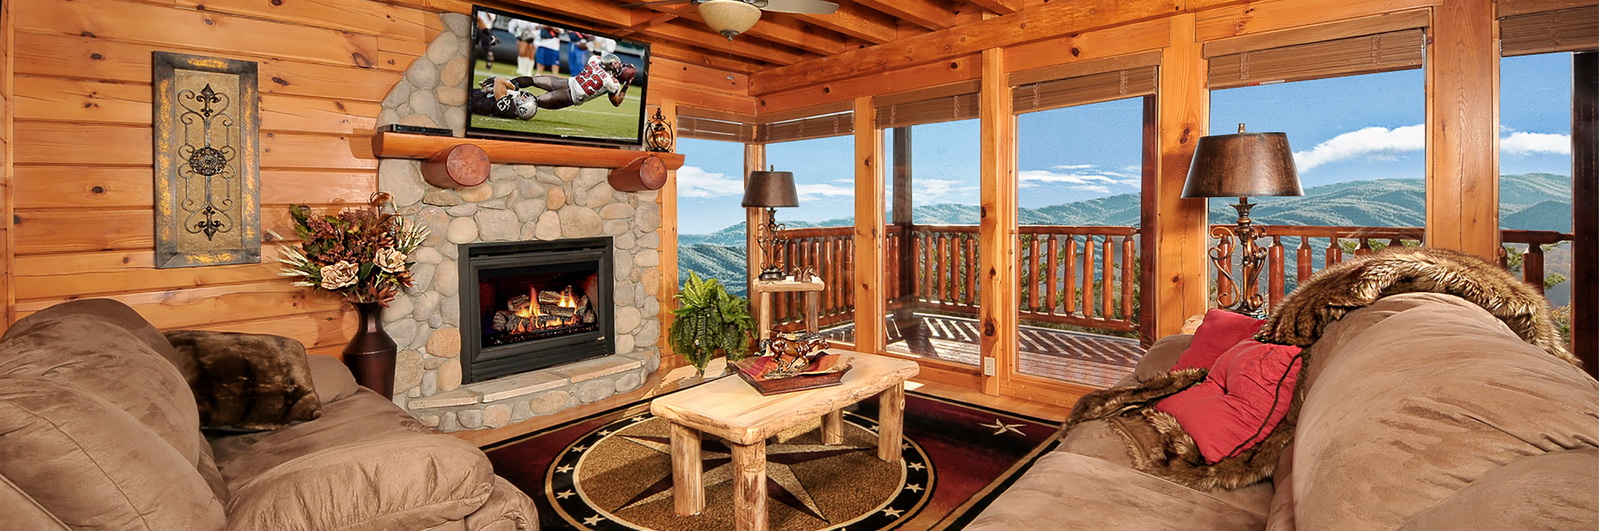 Outrageous cabins sevierville tn vacation rentals for Large cabin rentals in tennessee